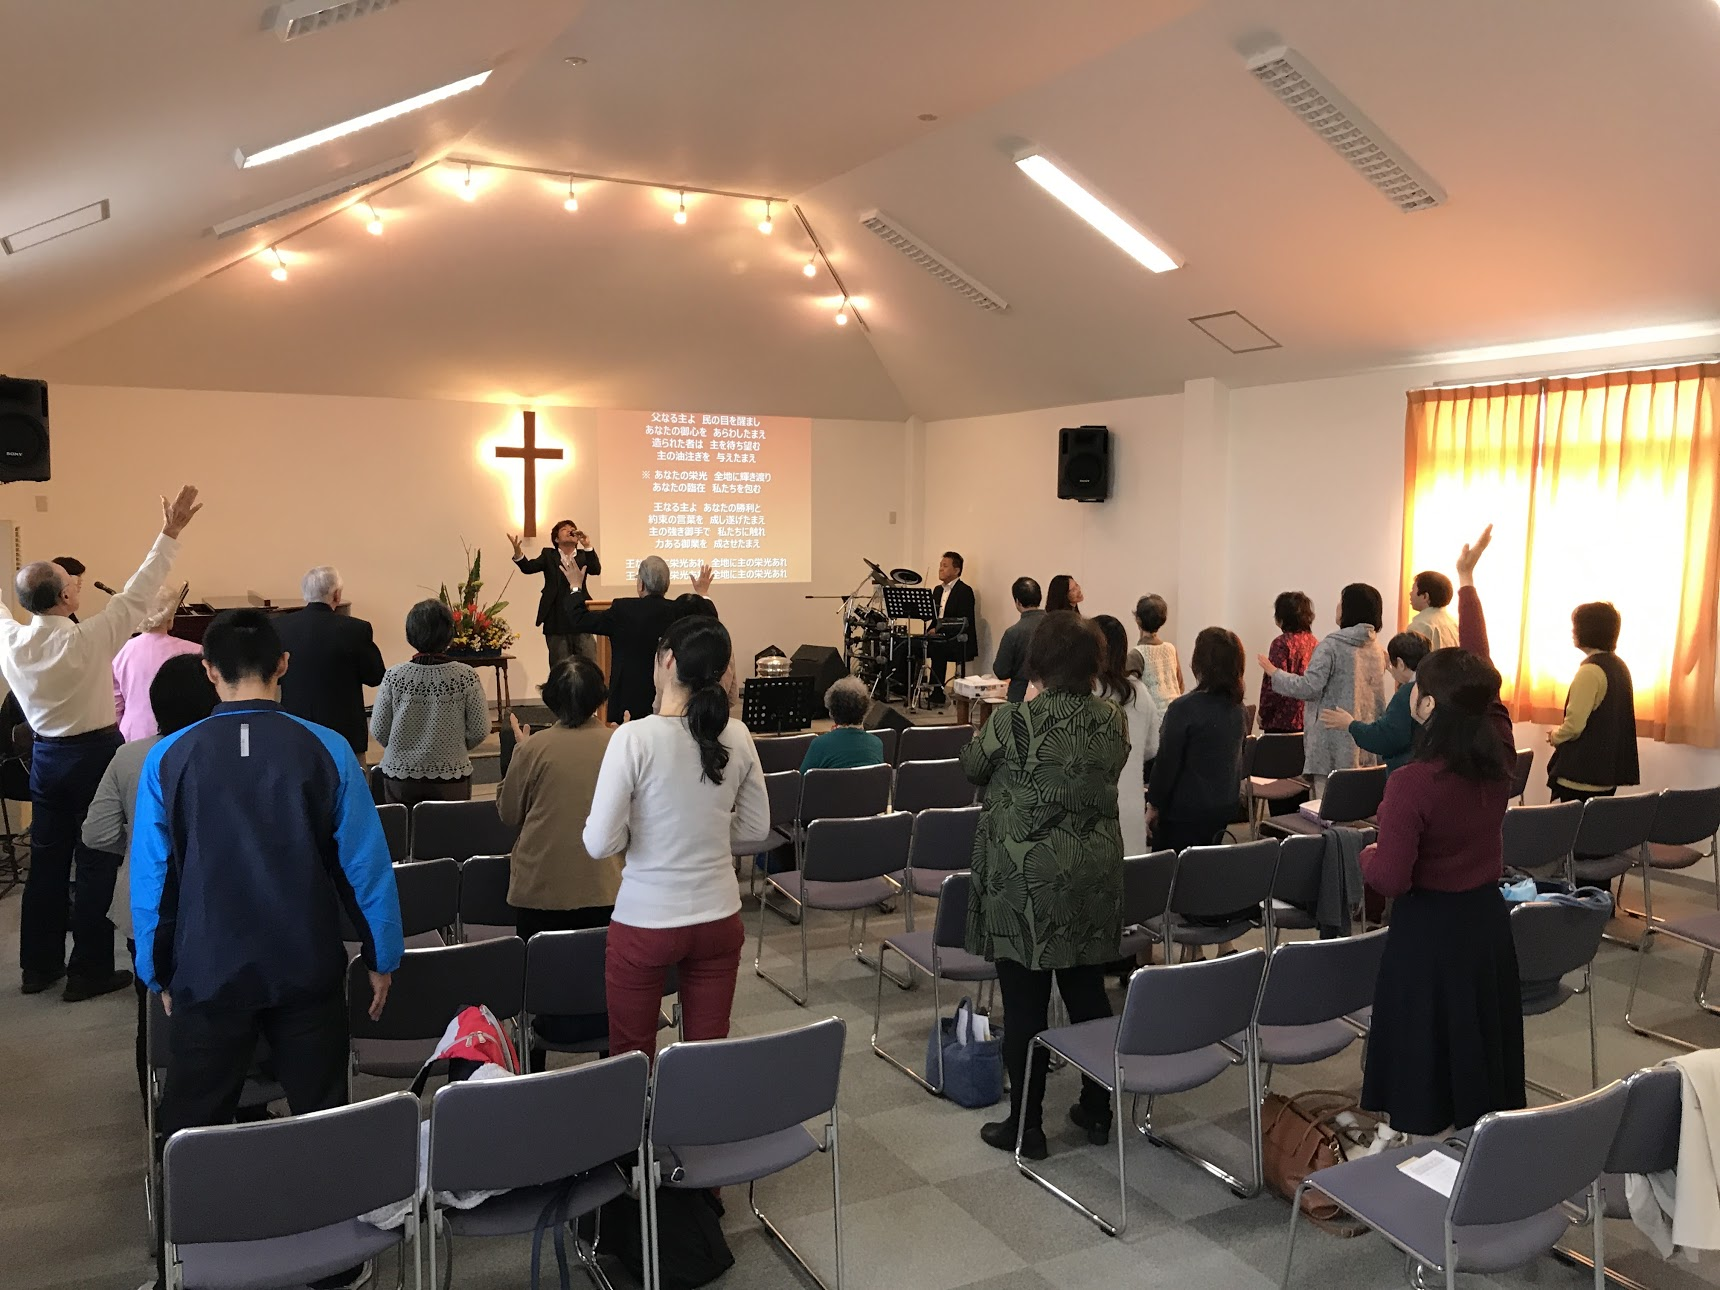 Bethel Riverside Chapel in Tsu, Japan! All of the churches I've visited so far are Next Towns churches. Next Towns was pioneered by John & Ruth Bell and continued by Archie & Verna Alderson.